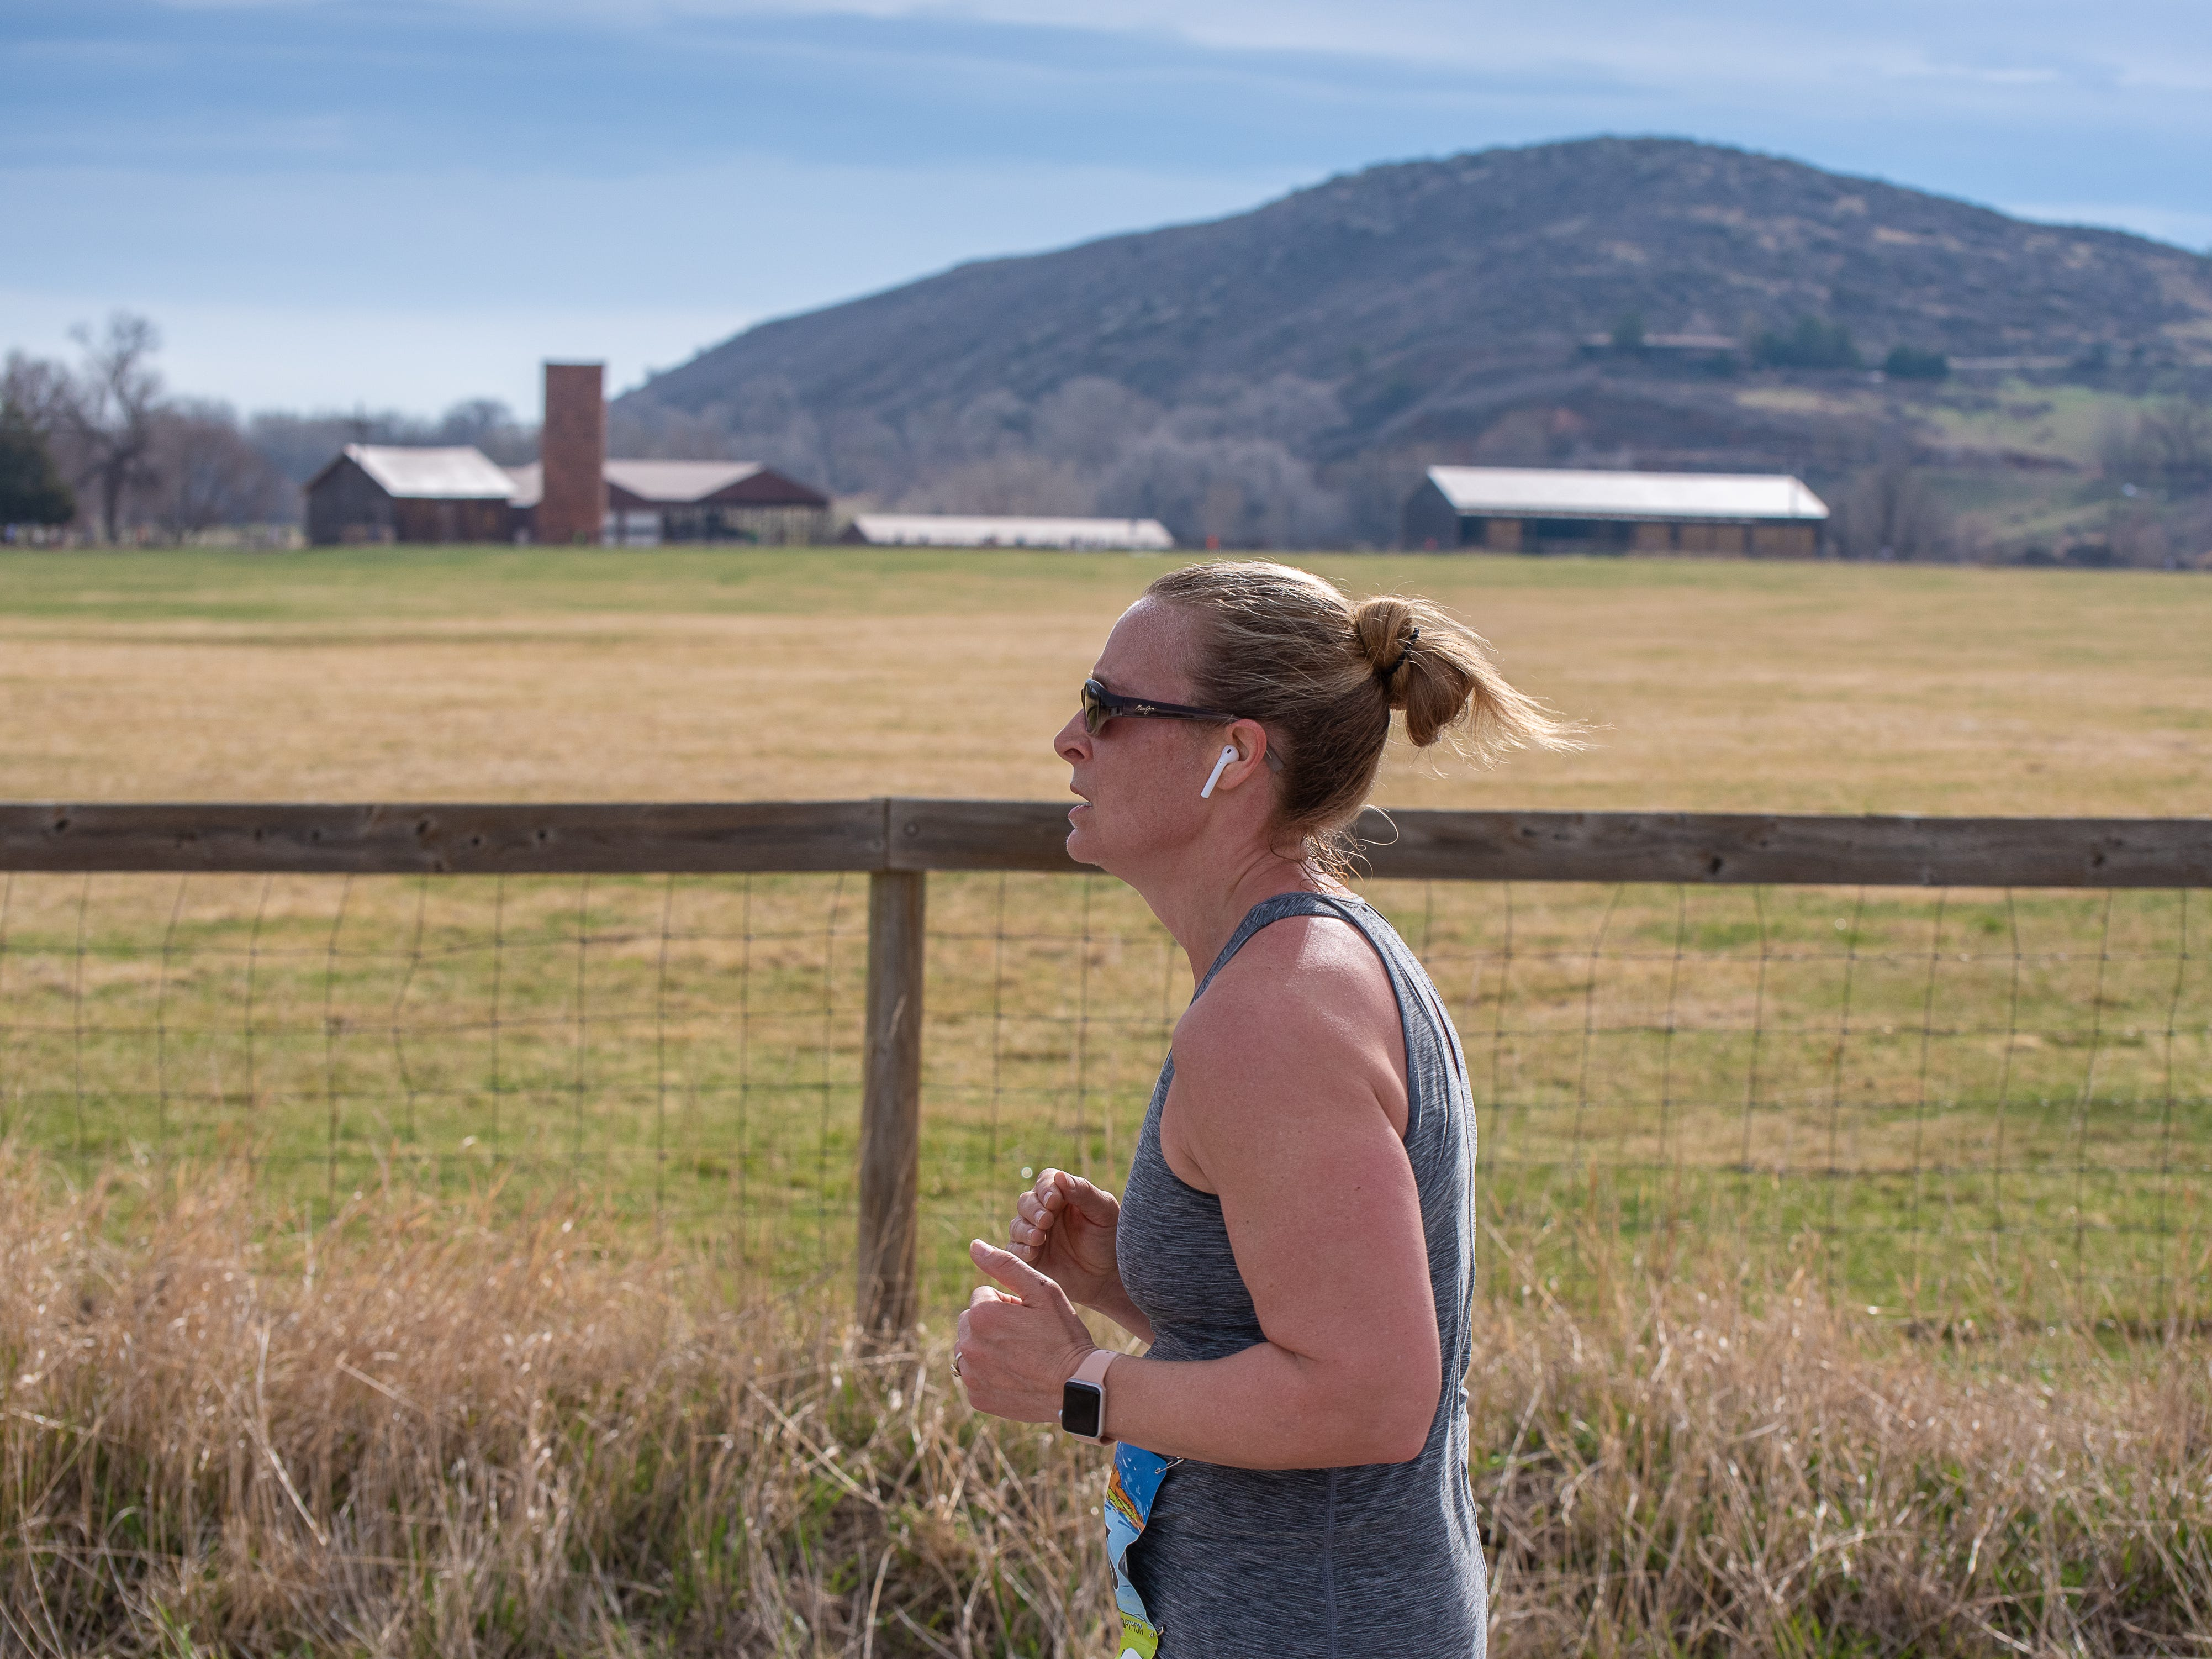 A participant runs by an open field near Bellvue during the Horsetooth Half Marathon on Sunday, April 14 2019, in Fort Collins, Colo.